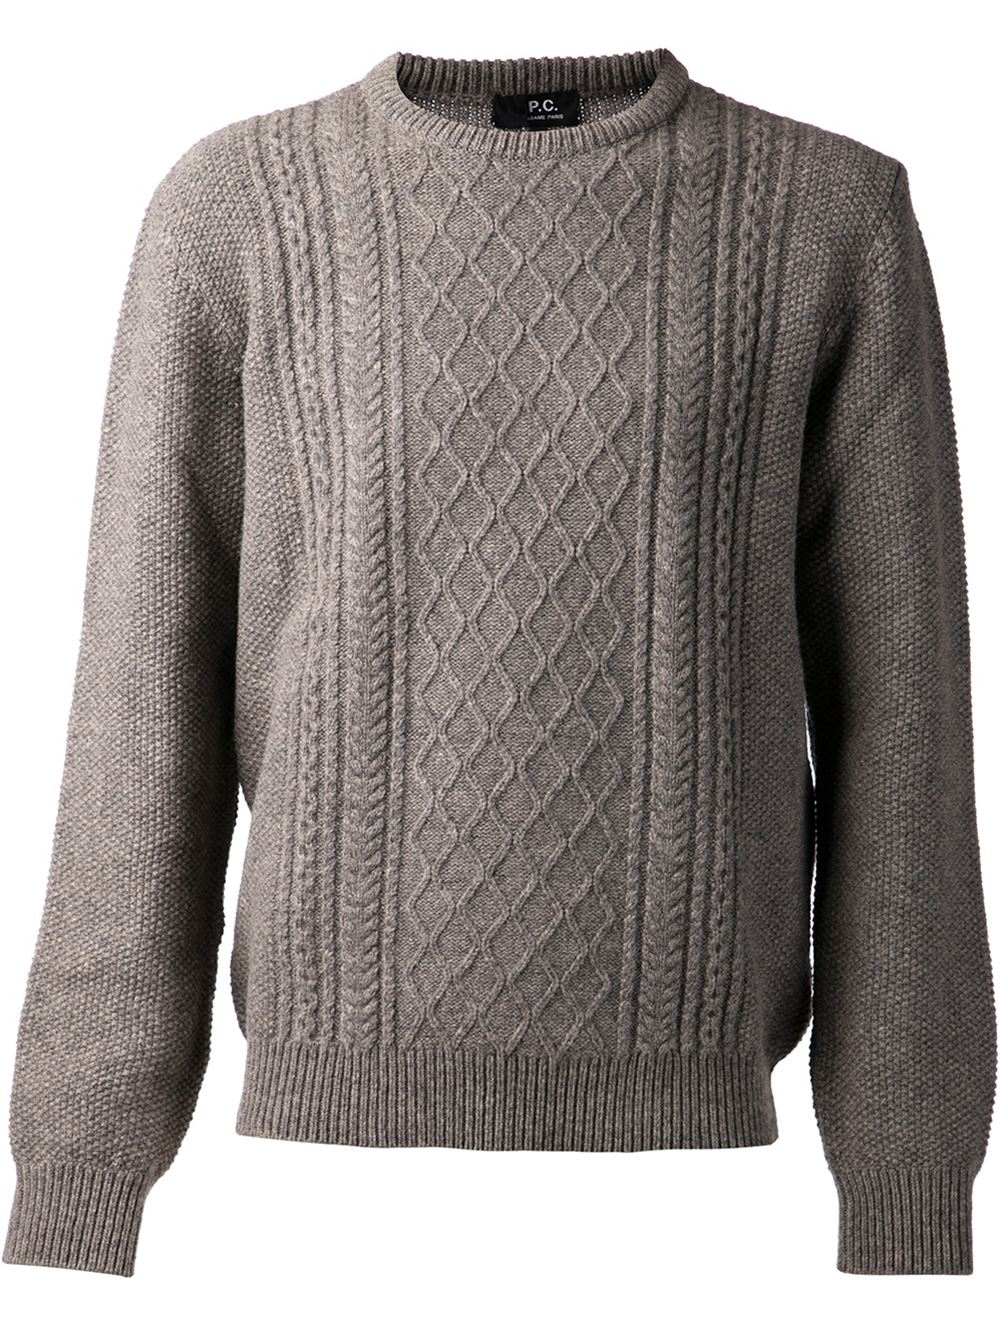 Grey Cable Knit Sweater Mens - English Sweater Vest